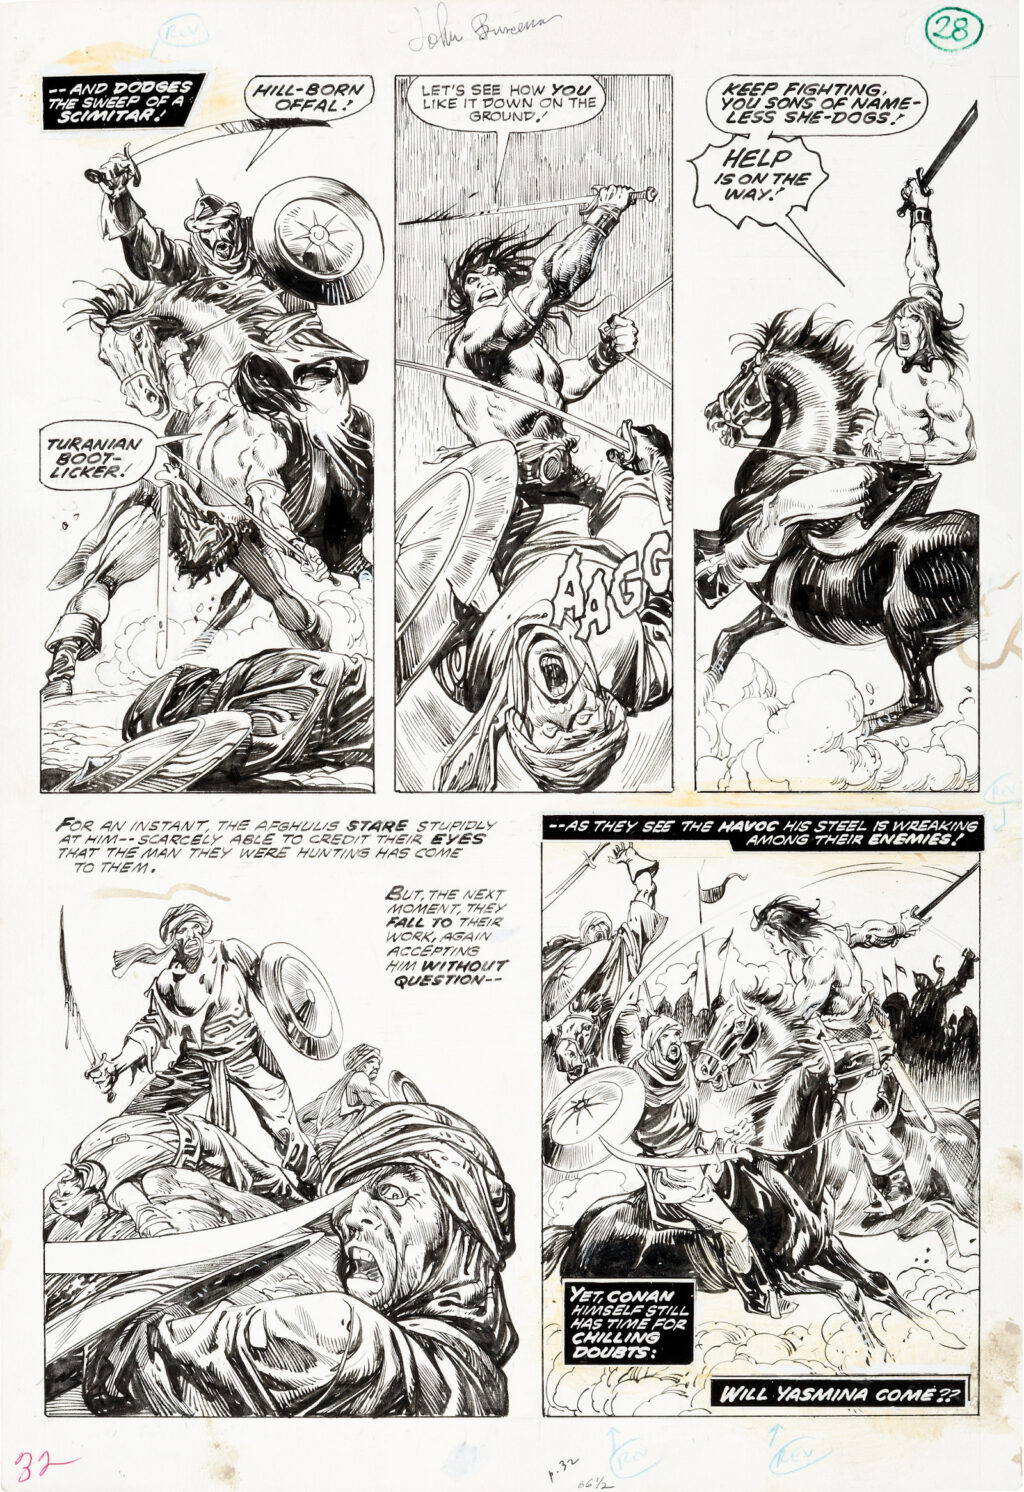 The Savage Sword of Conan issue 19 age 28 by John Buscema and Alfredo Alcala